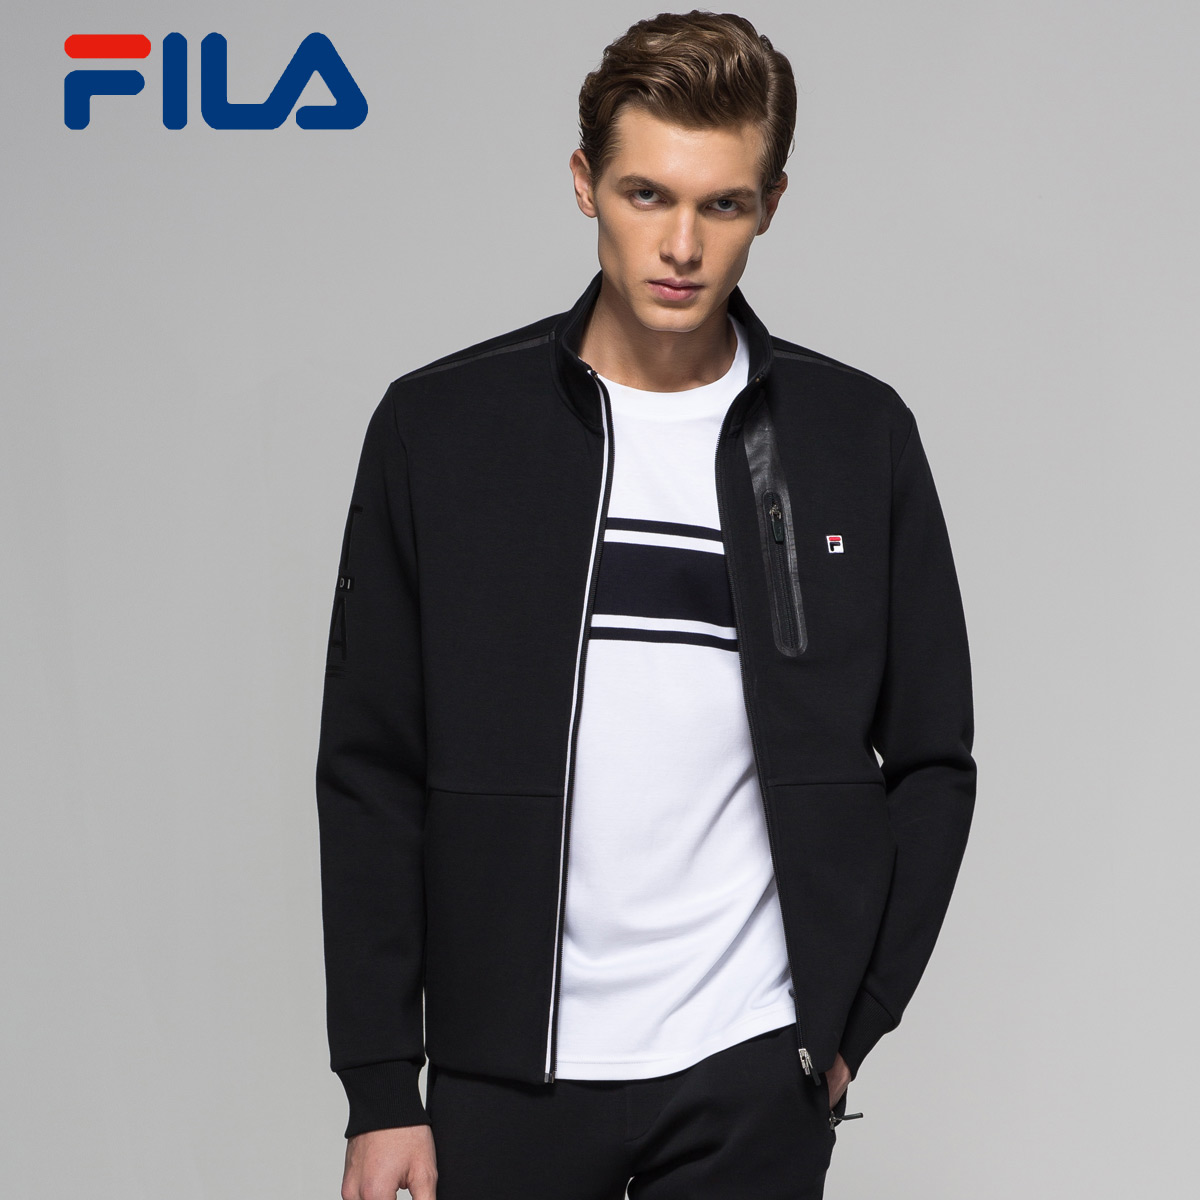 USD 231.79  FILA Philo men s jacket spring new knit jacket sports ... 2372a2c05388